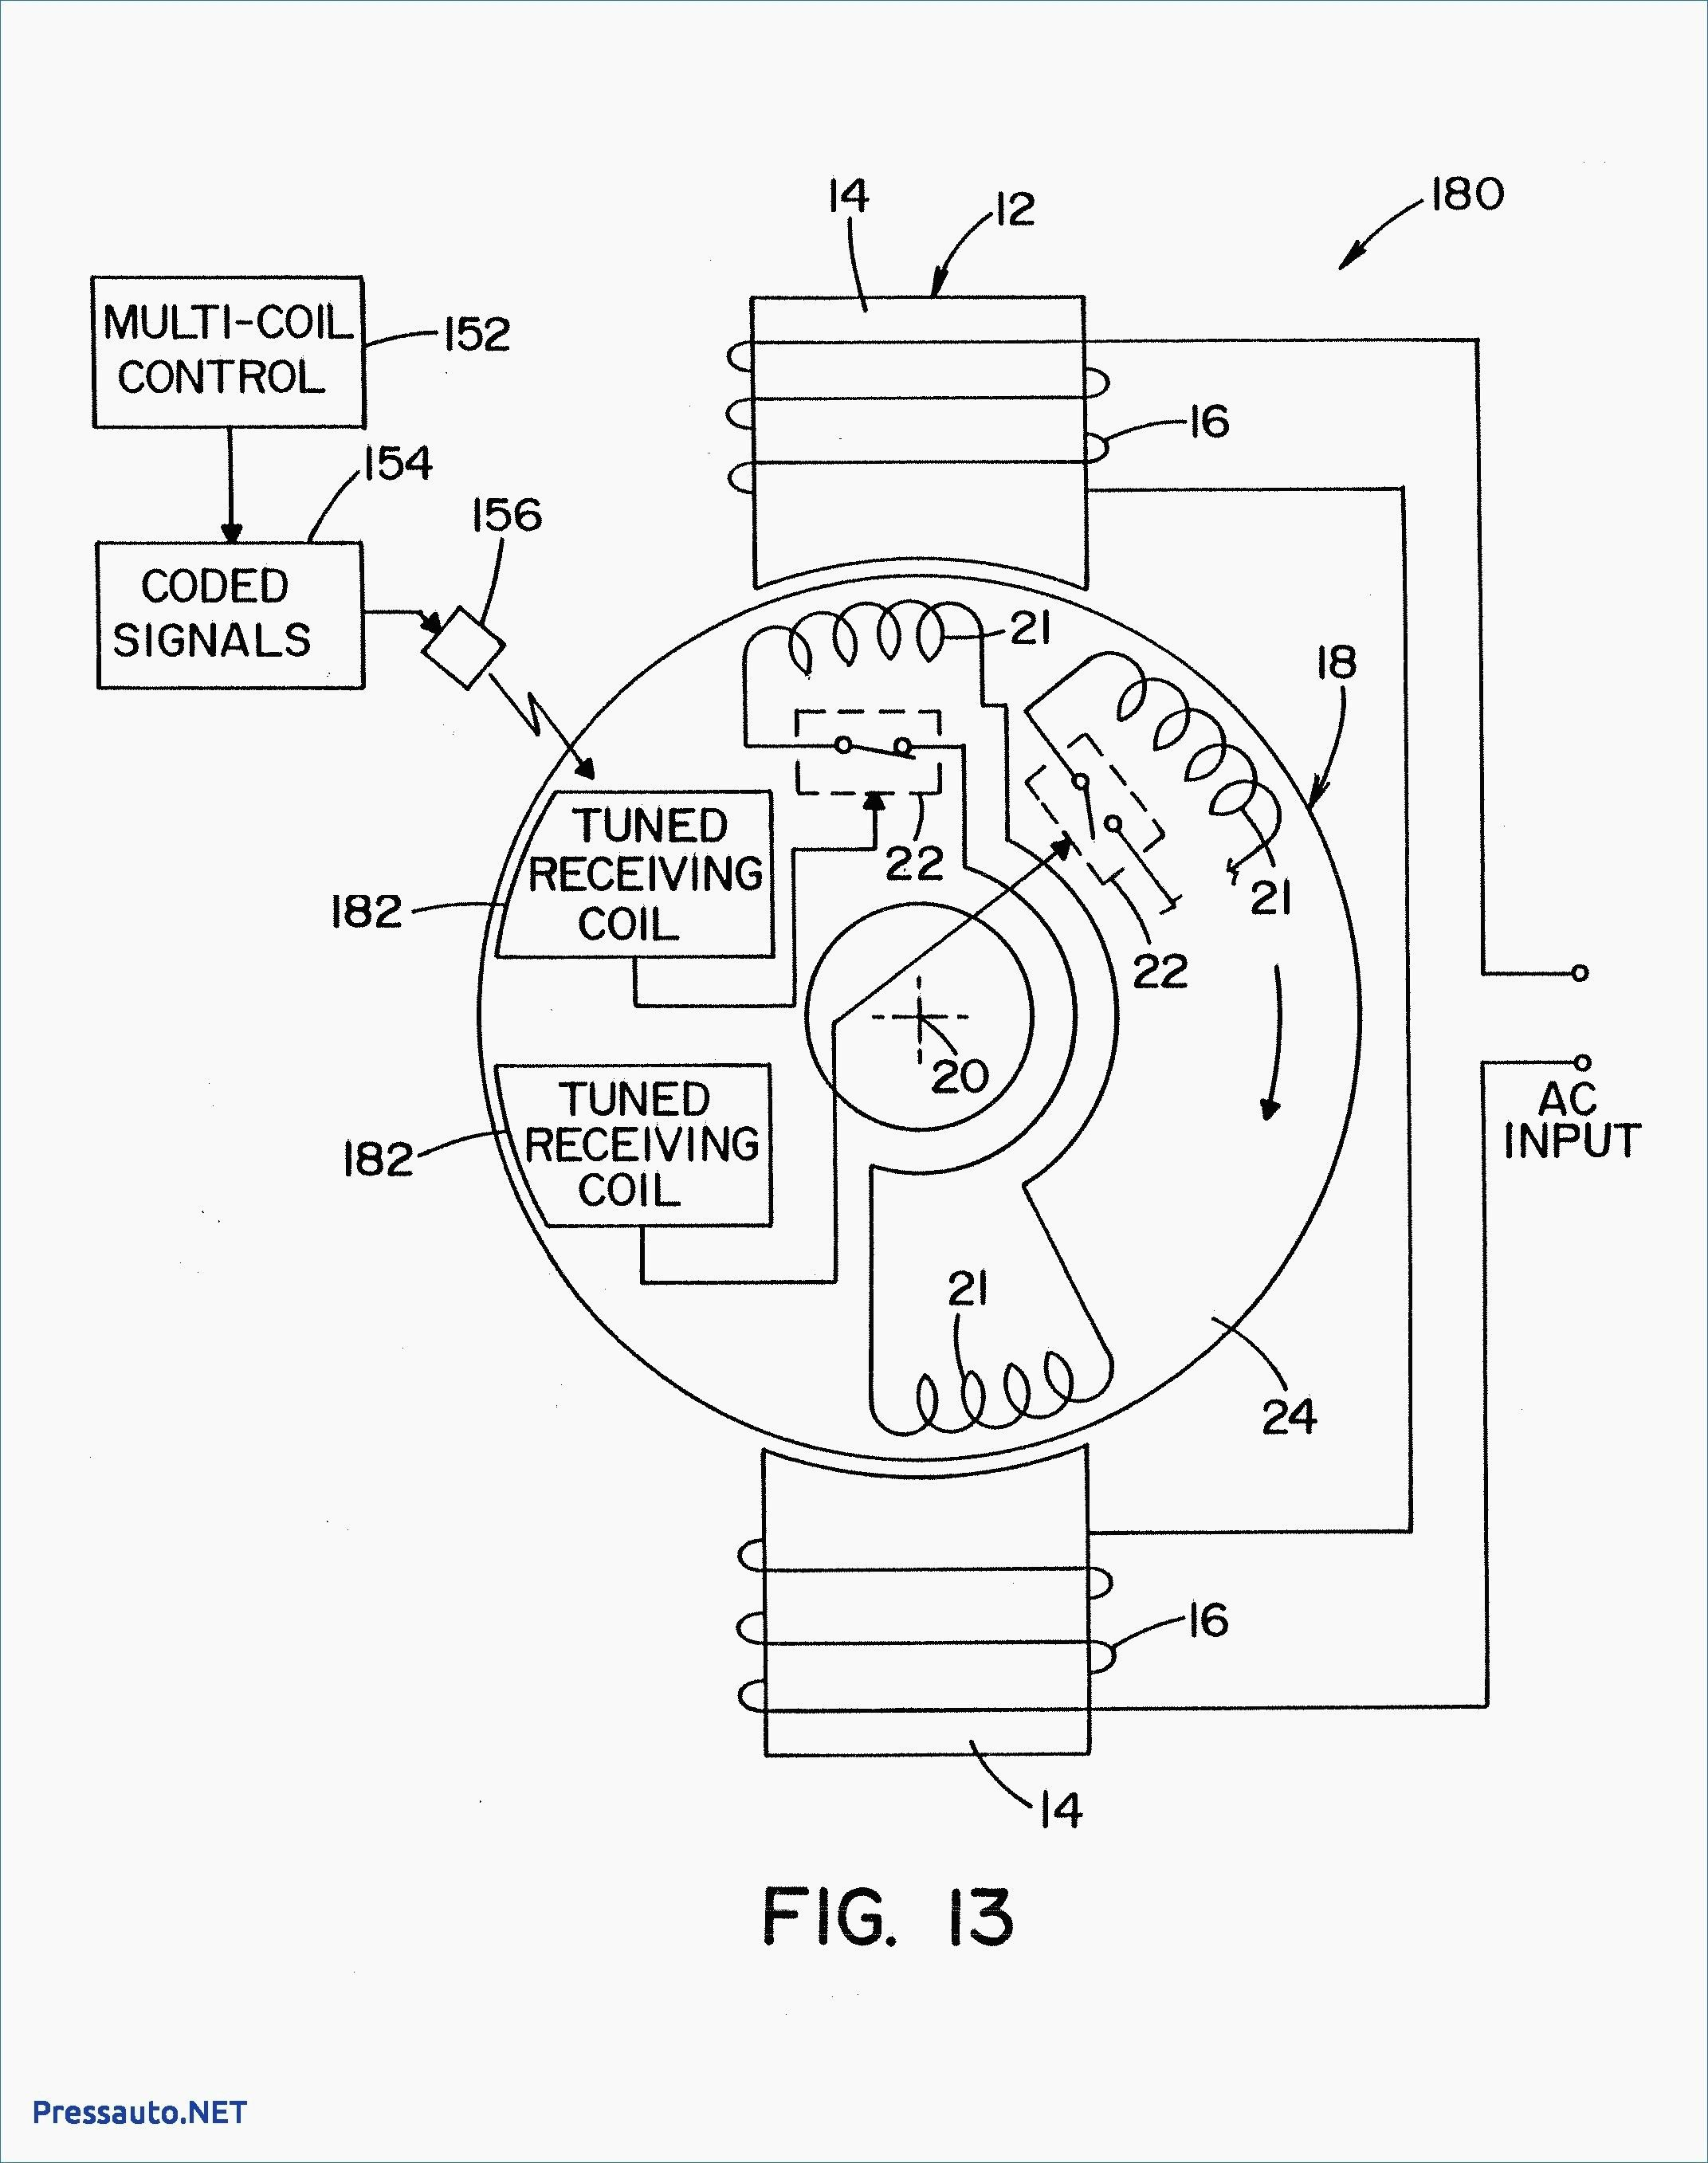 New Auto Gate Motor Wiring Diagram Pdf